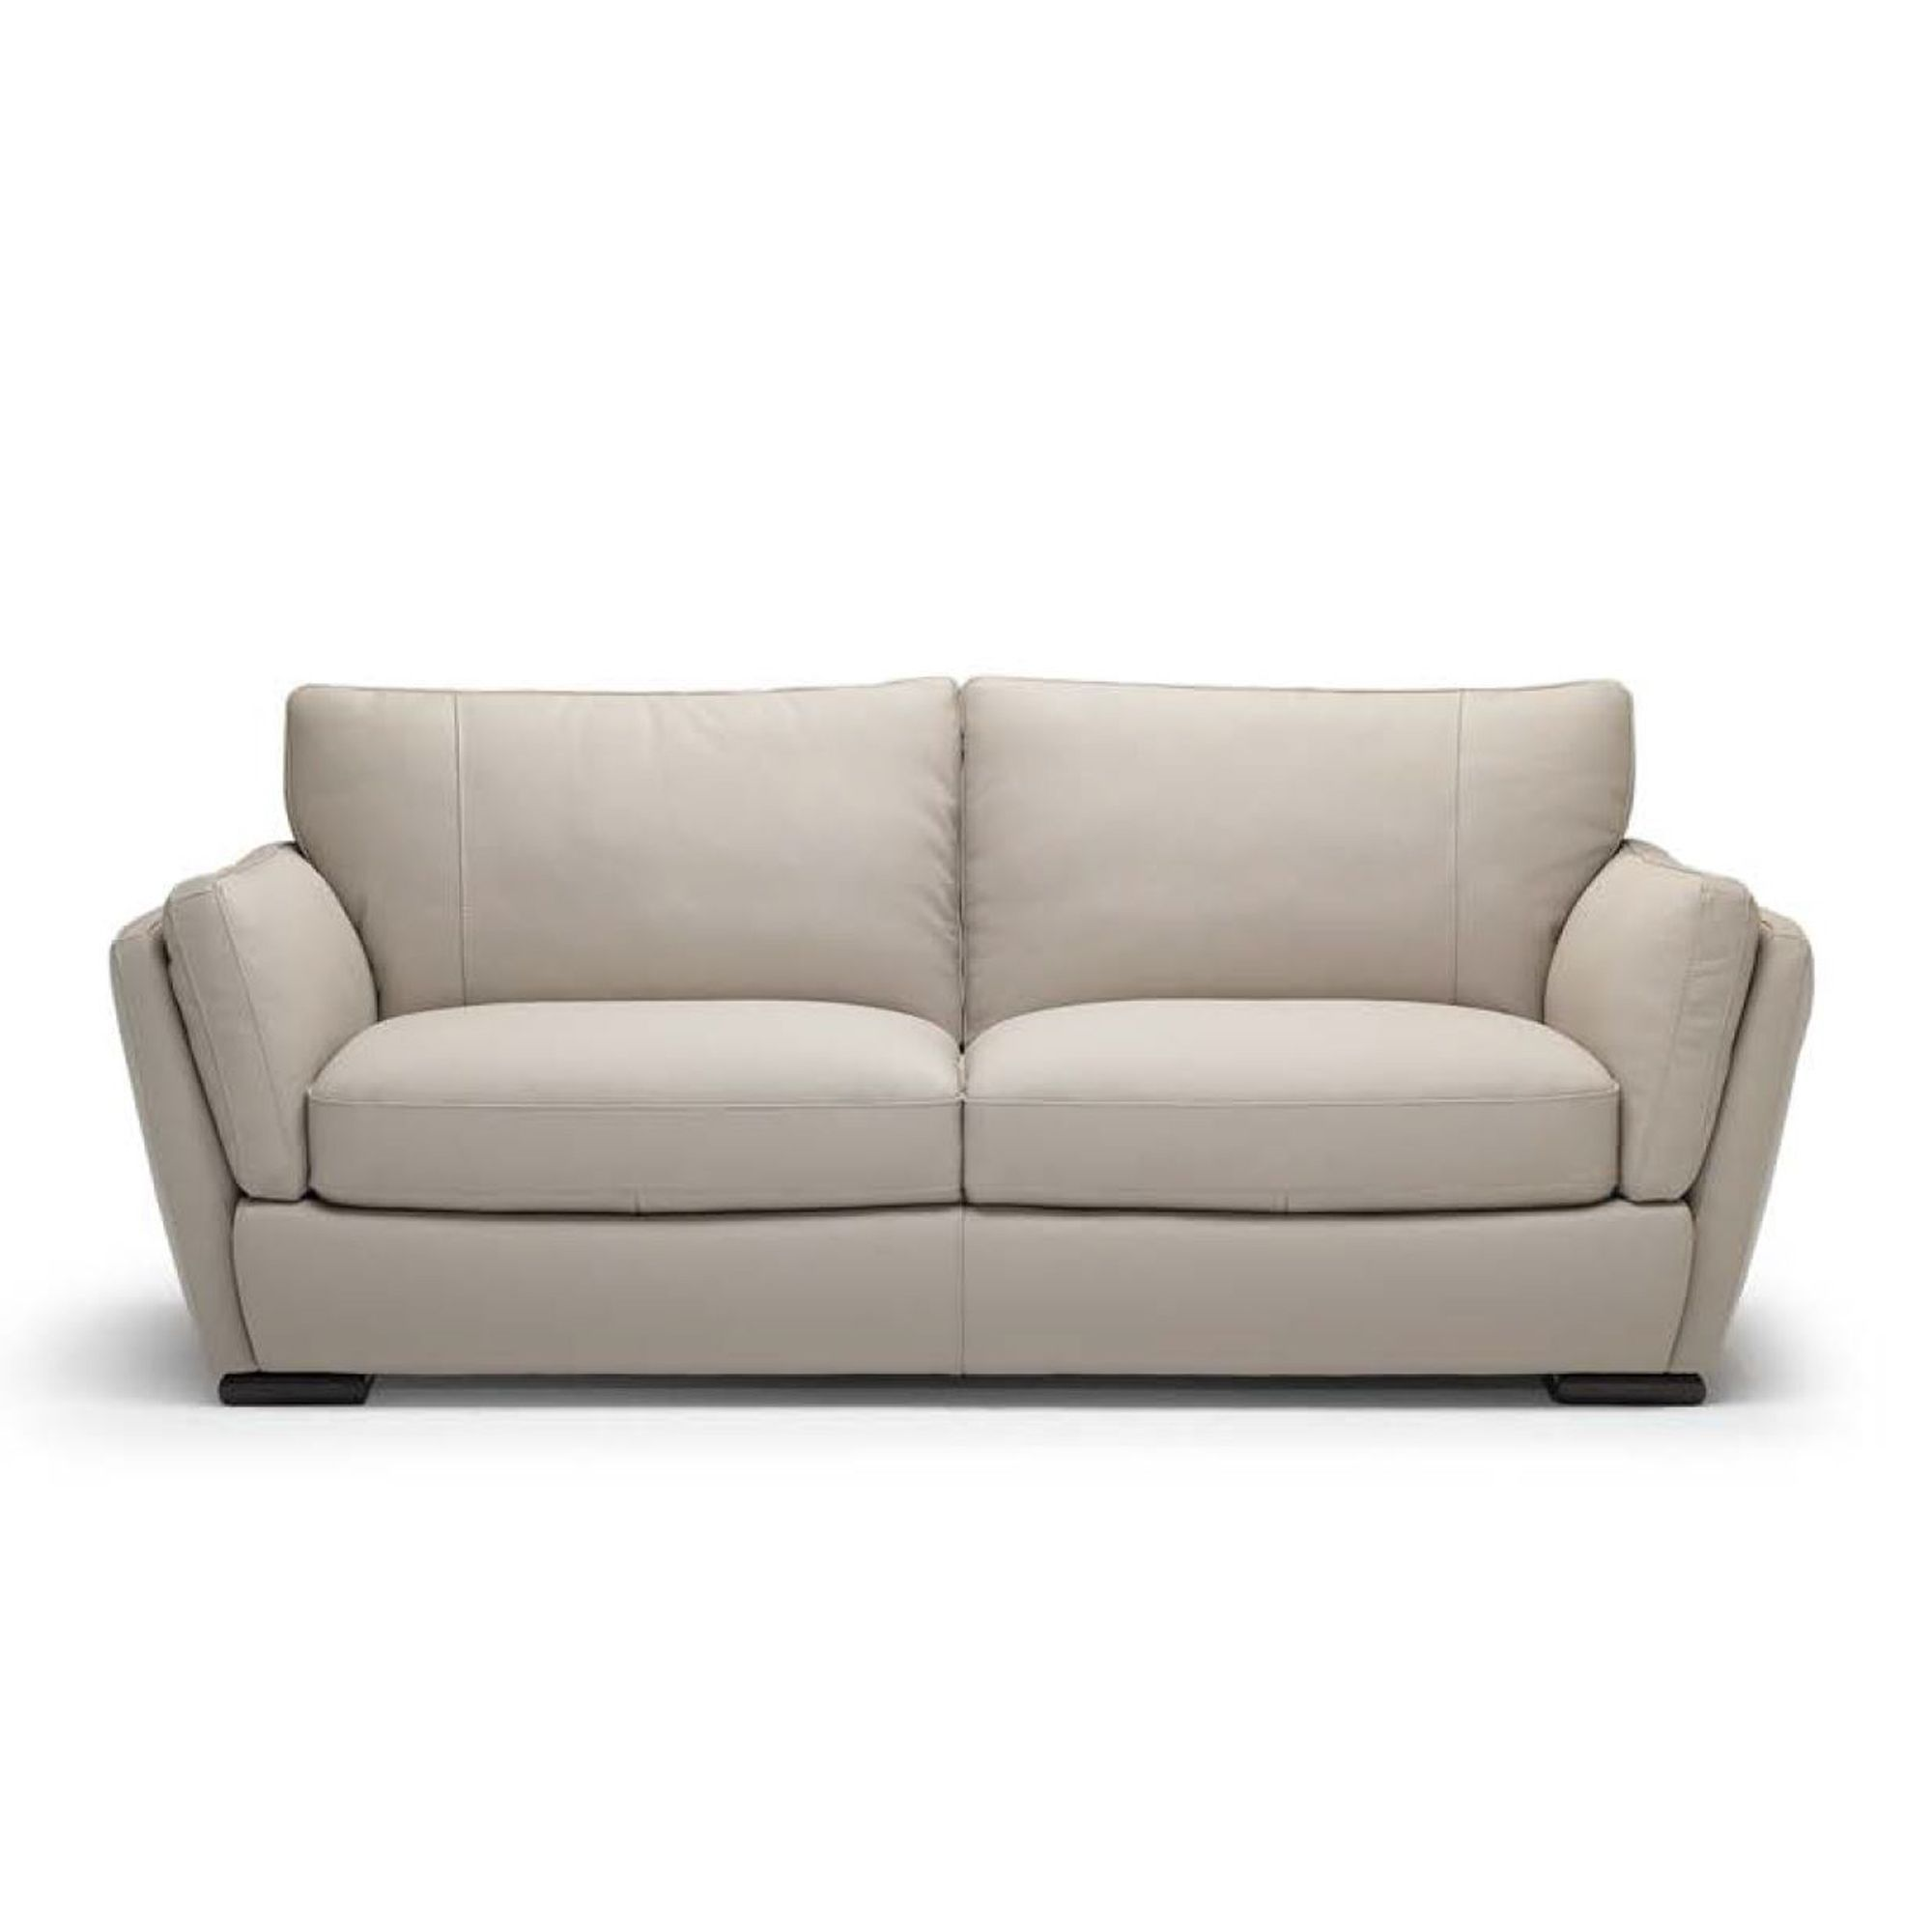 Natuzzi Editions Davos Large Sofa Available Via Shop The